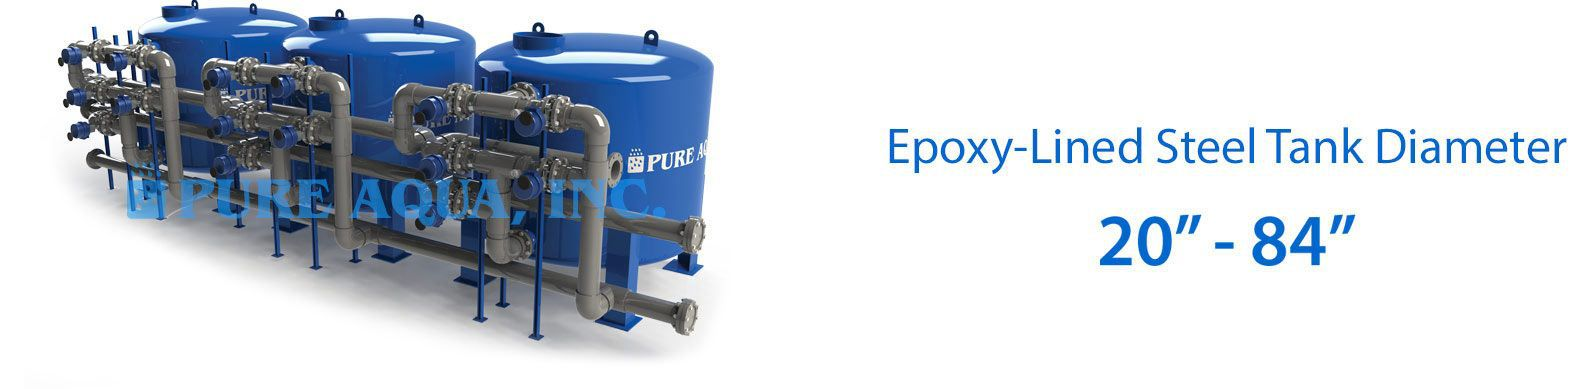 industrial water media filters mf 1000 series specifications